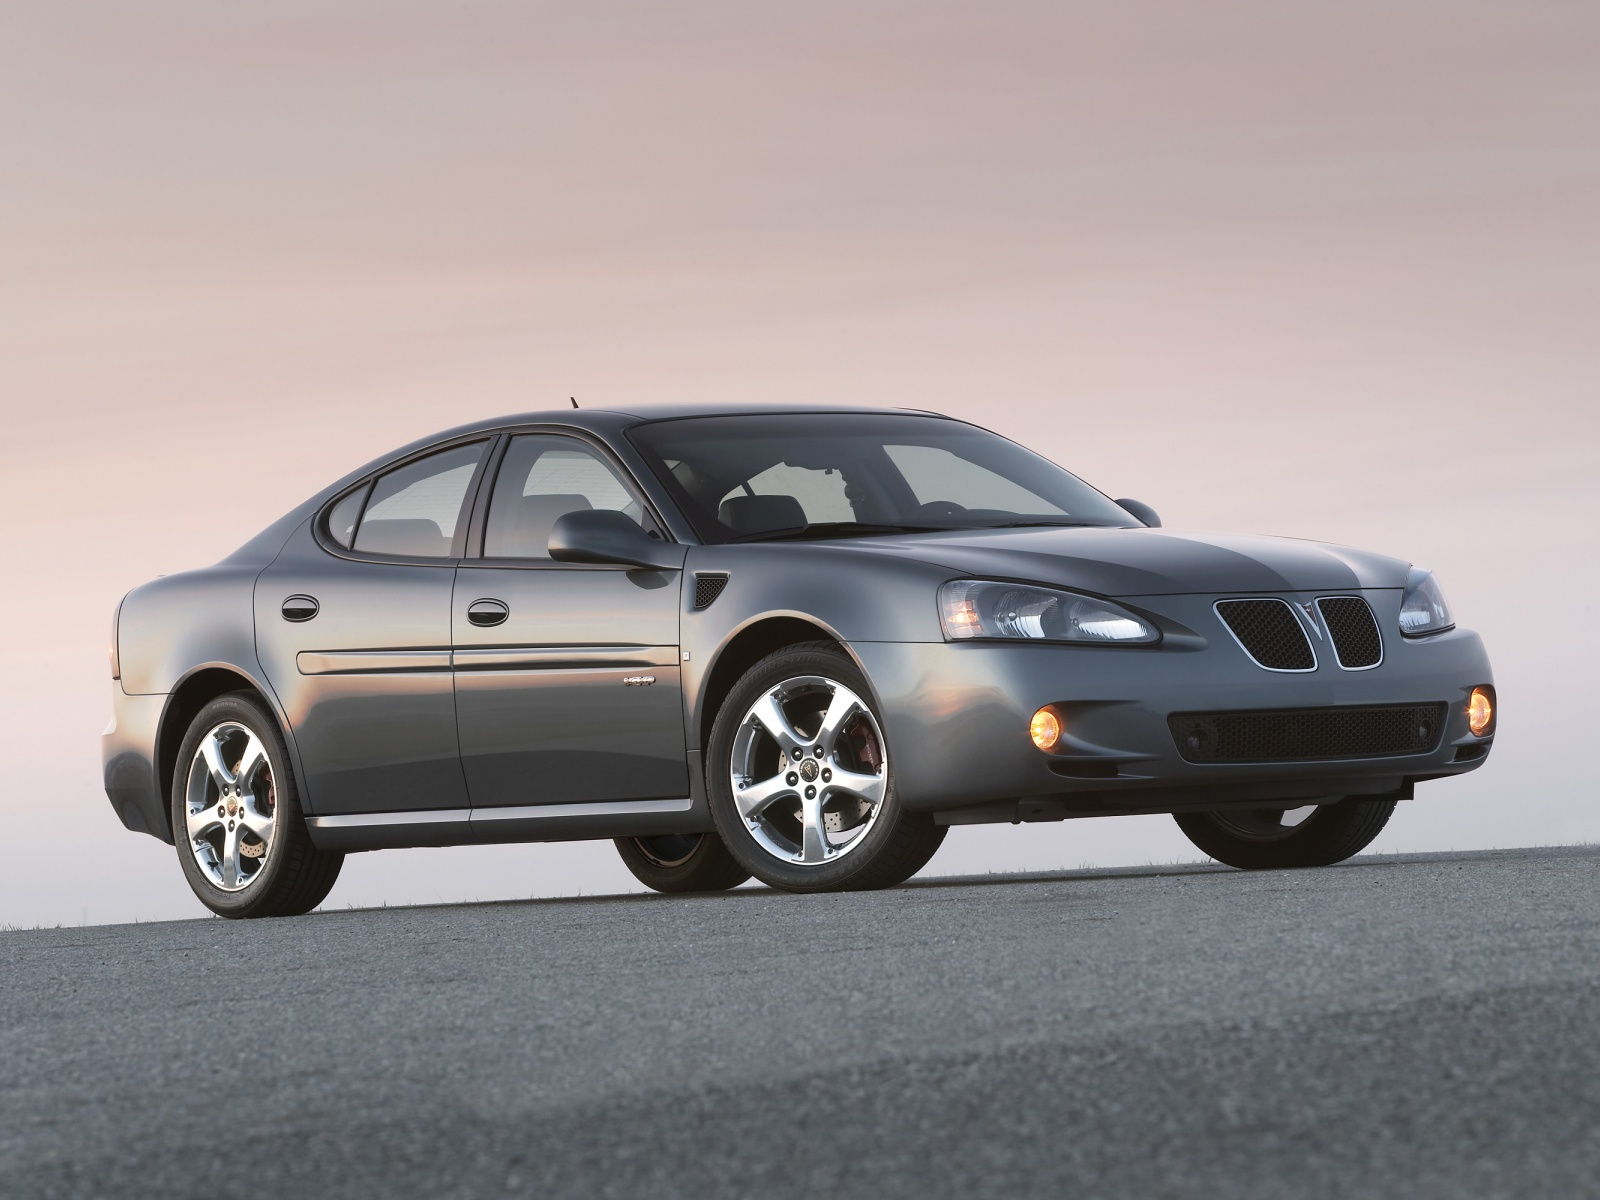 2007 pontiac grand prix gxp motor desktop. Black Bedroom Furniture Sets. Home Design Ideas